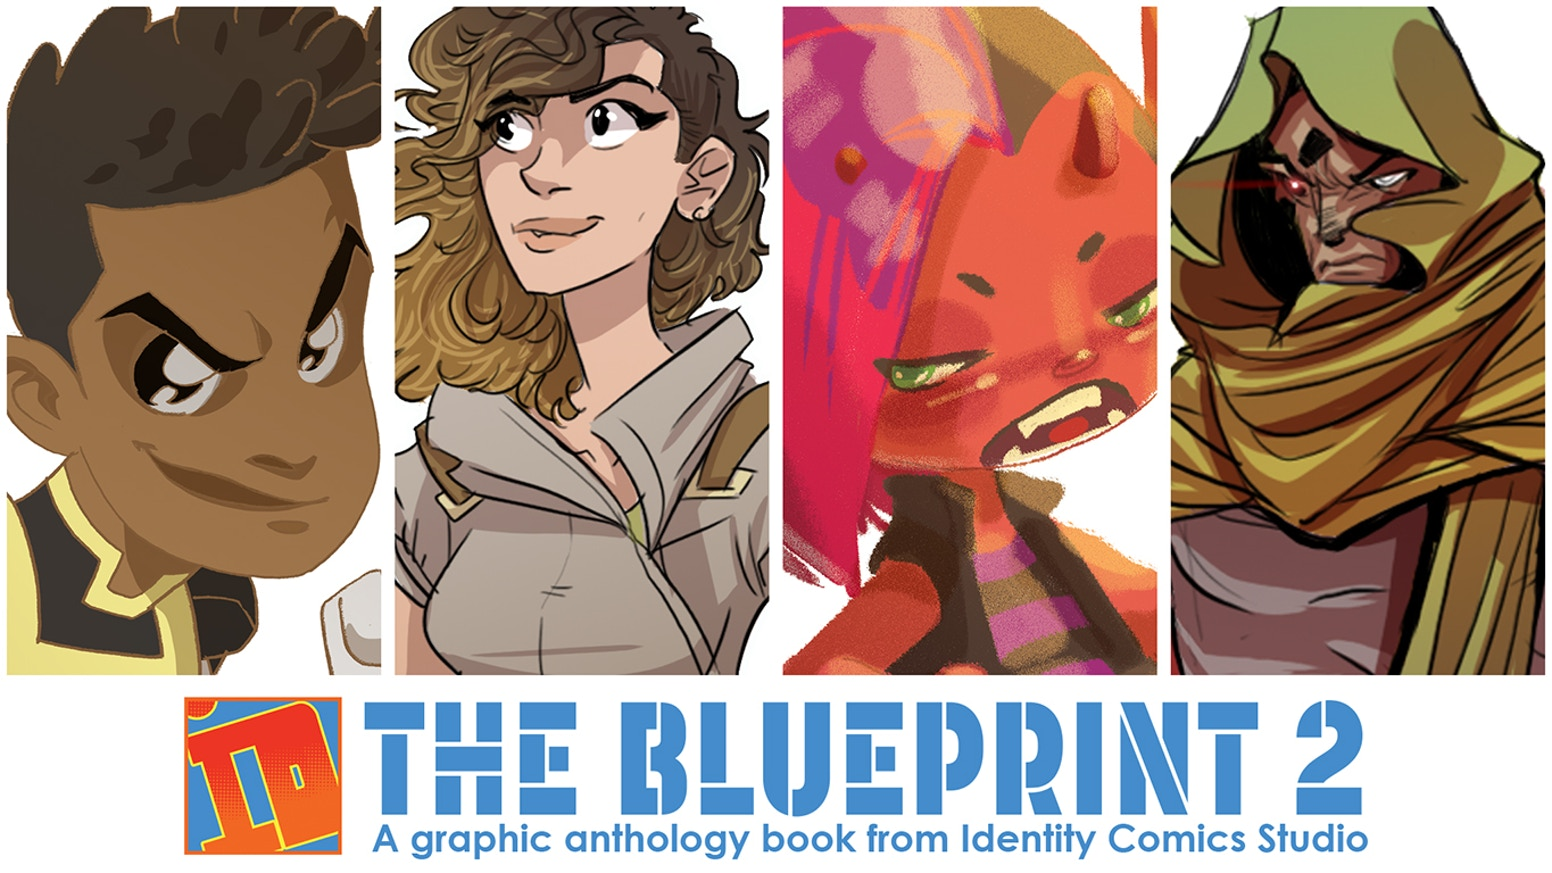 Identity Comics Studio is putting together a graphic anthology with four short stories and a ton of visual development artwork.